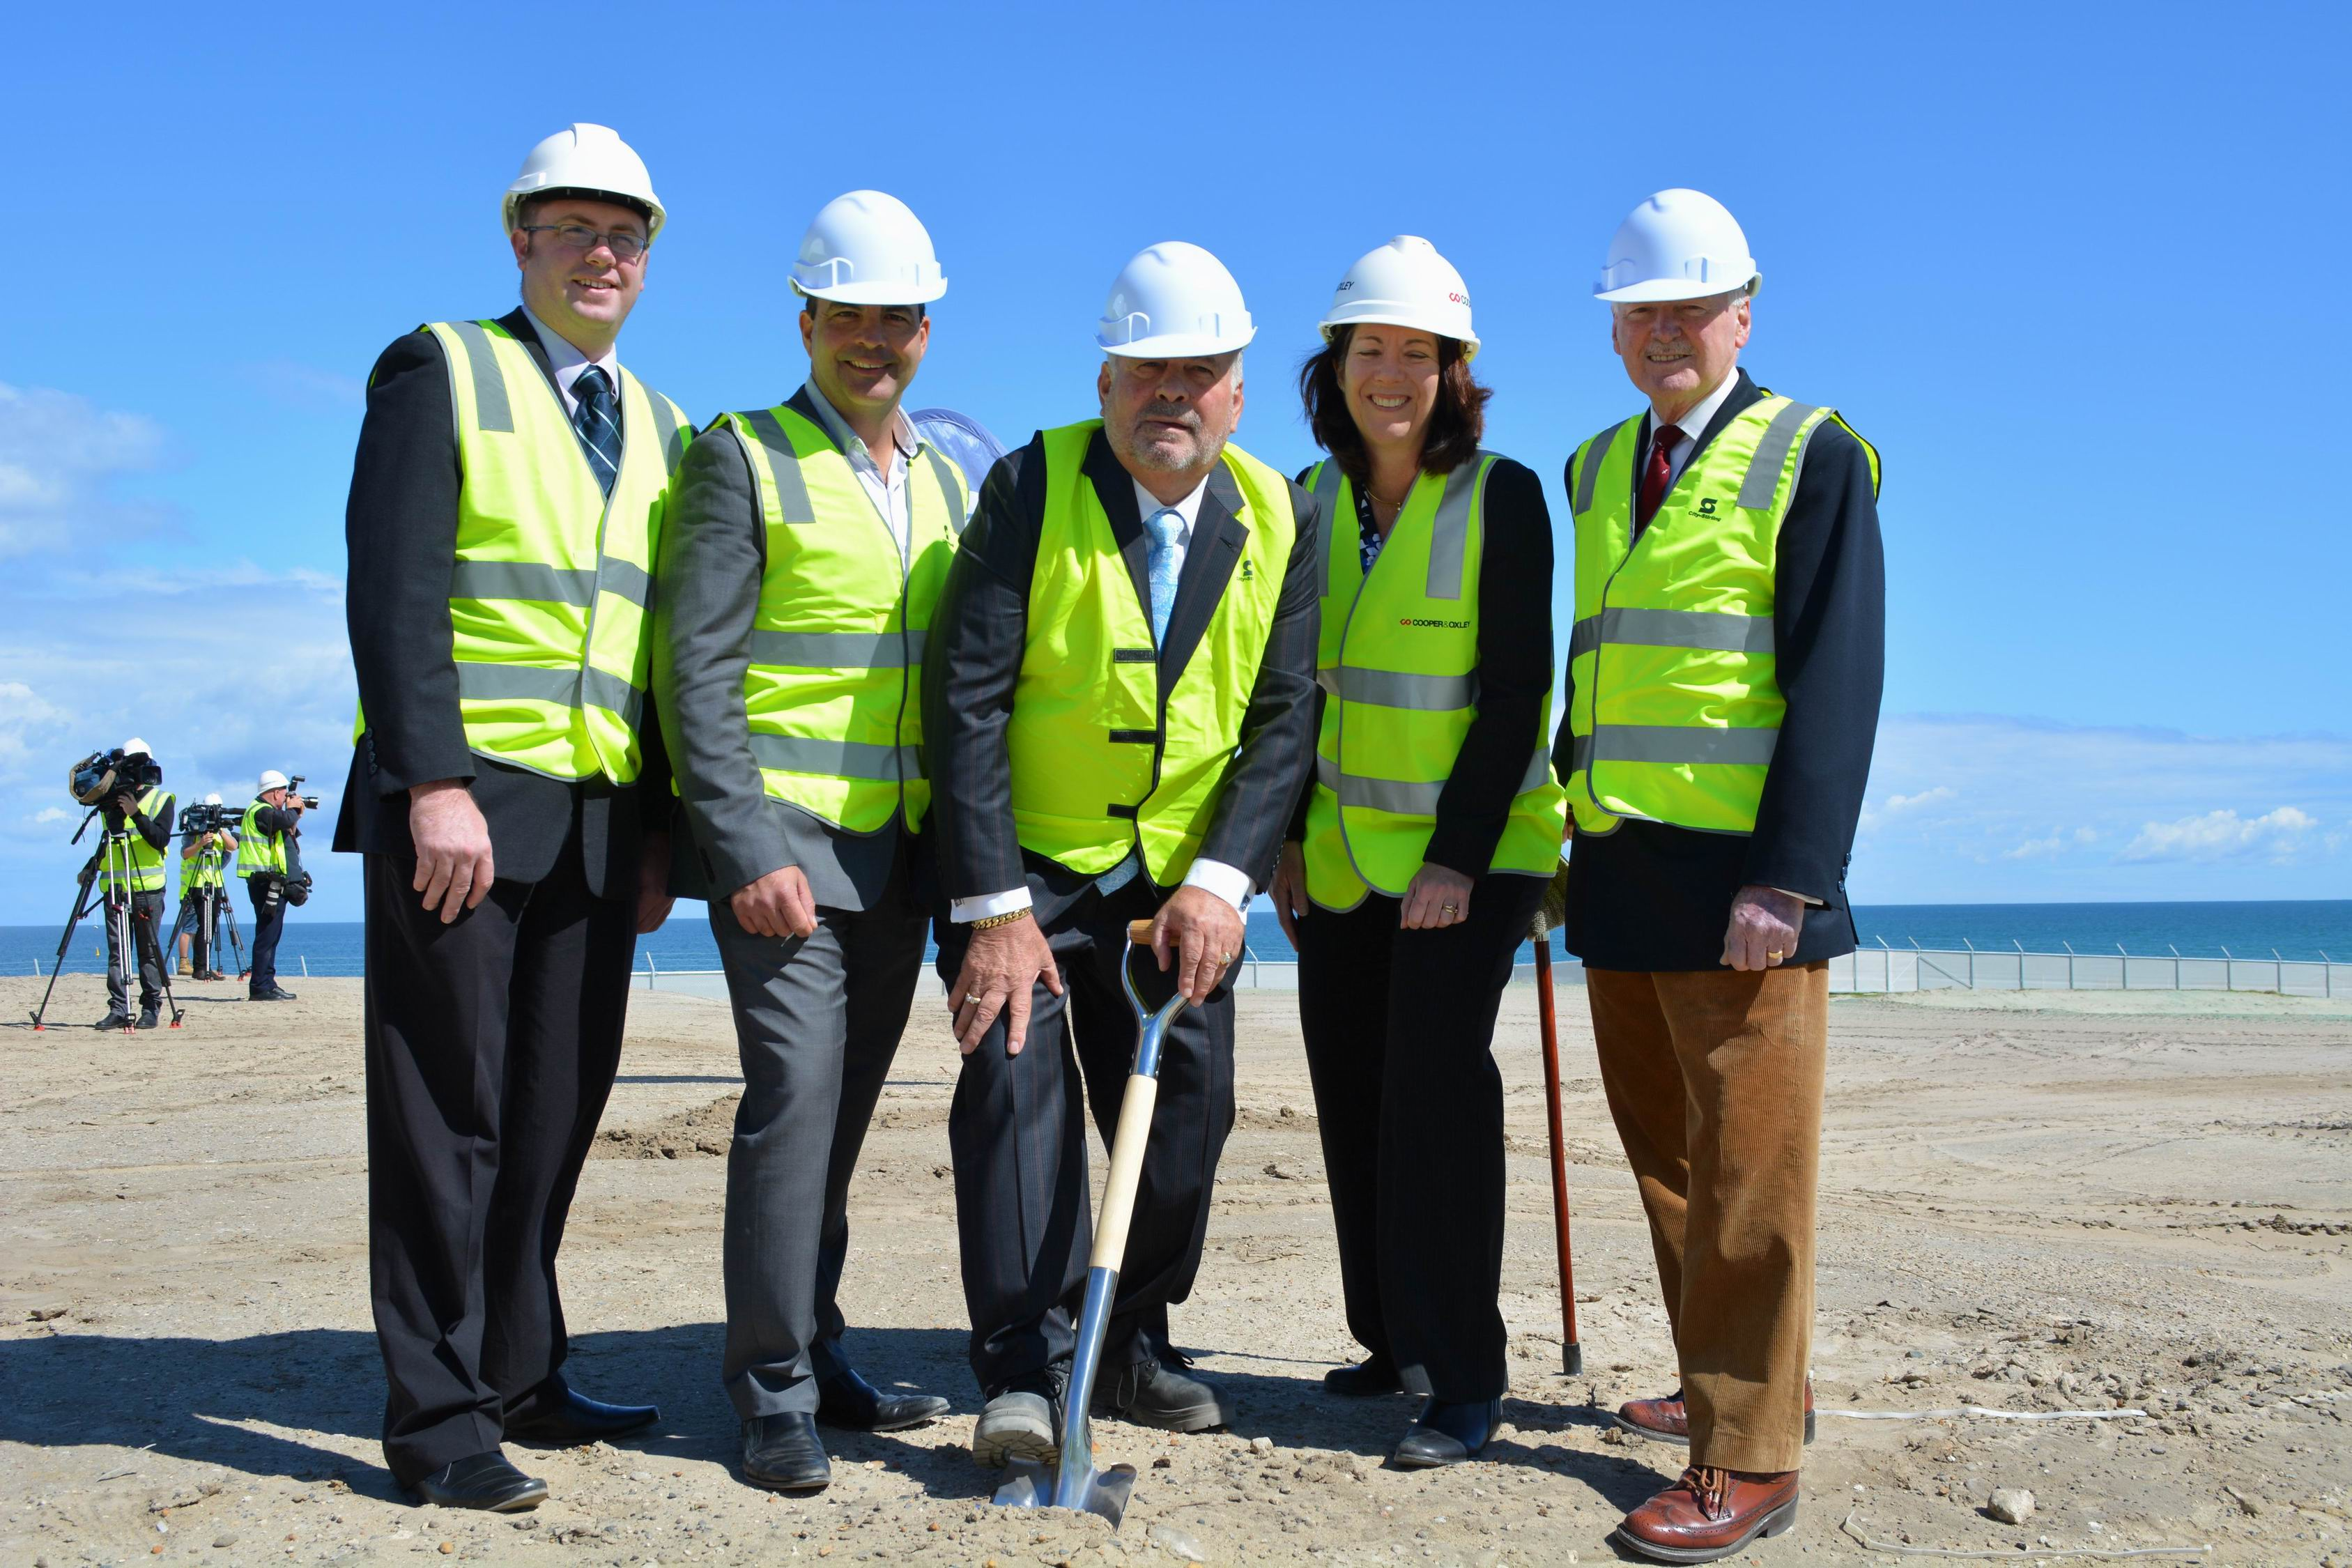 Scarborough Beach Pool: first sod turned at $26m 'jewel in Scarborugh's crown'